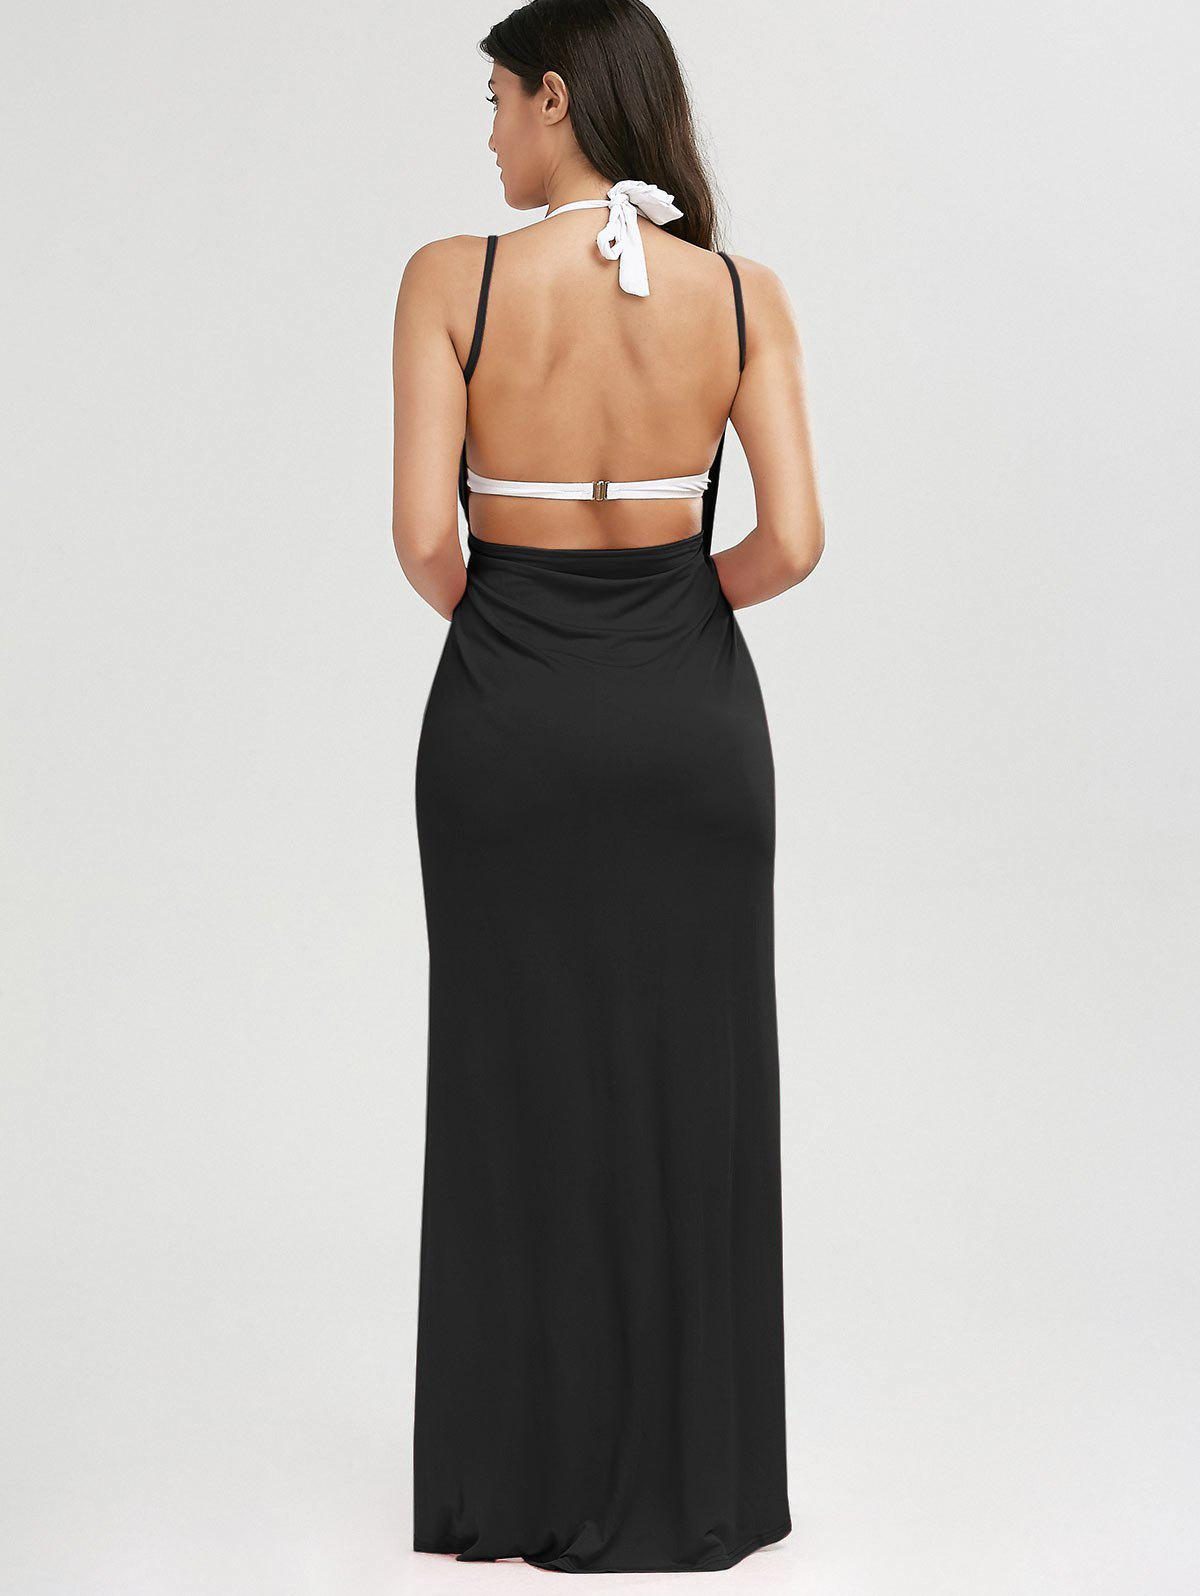 Beach Maxi Wrap Slip Dress - BLACK L